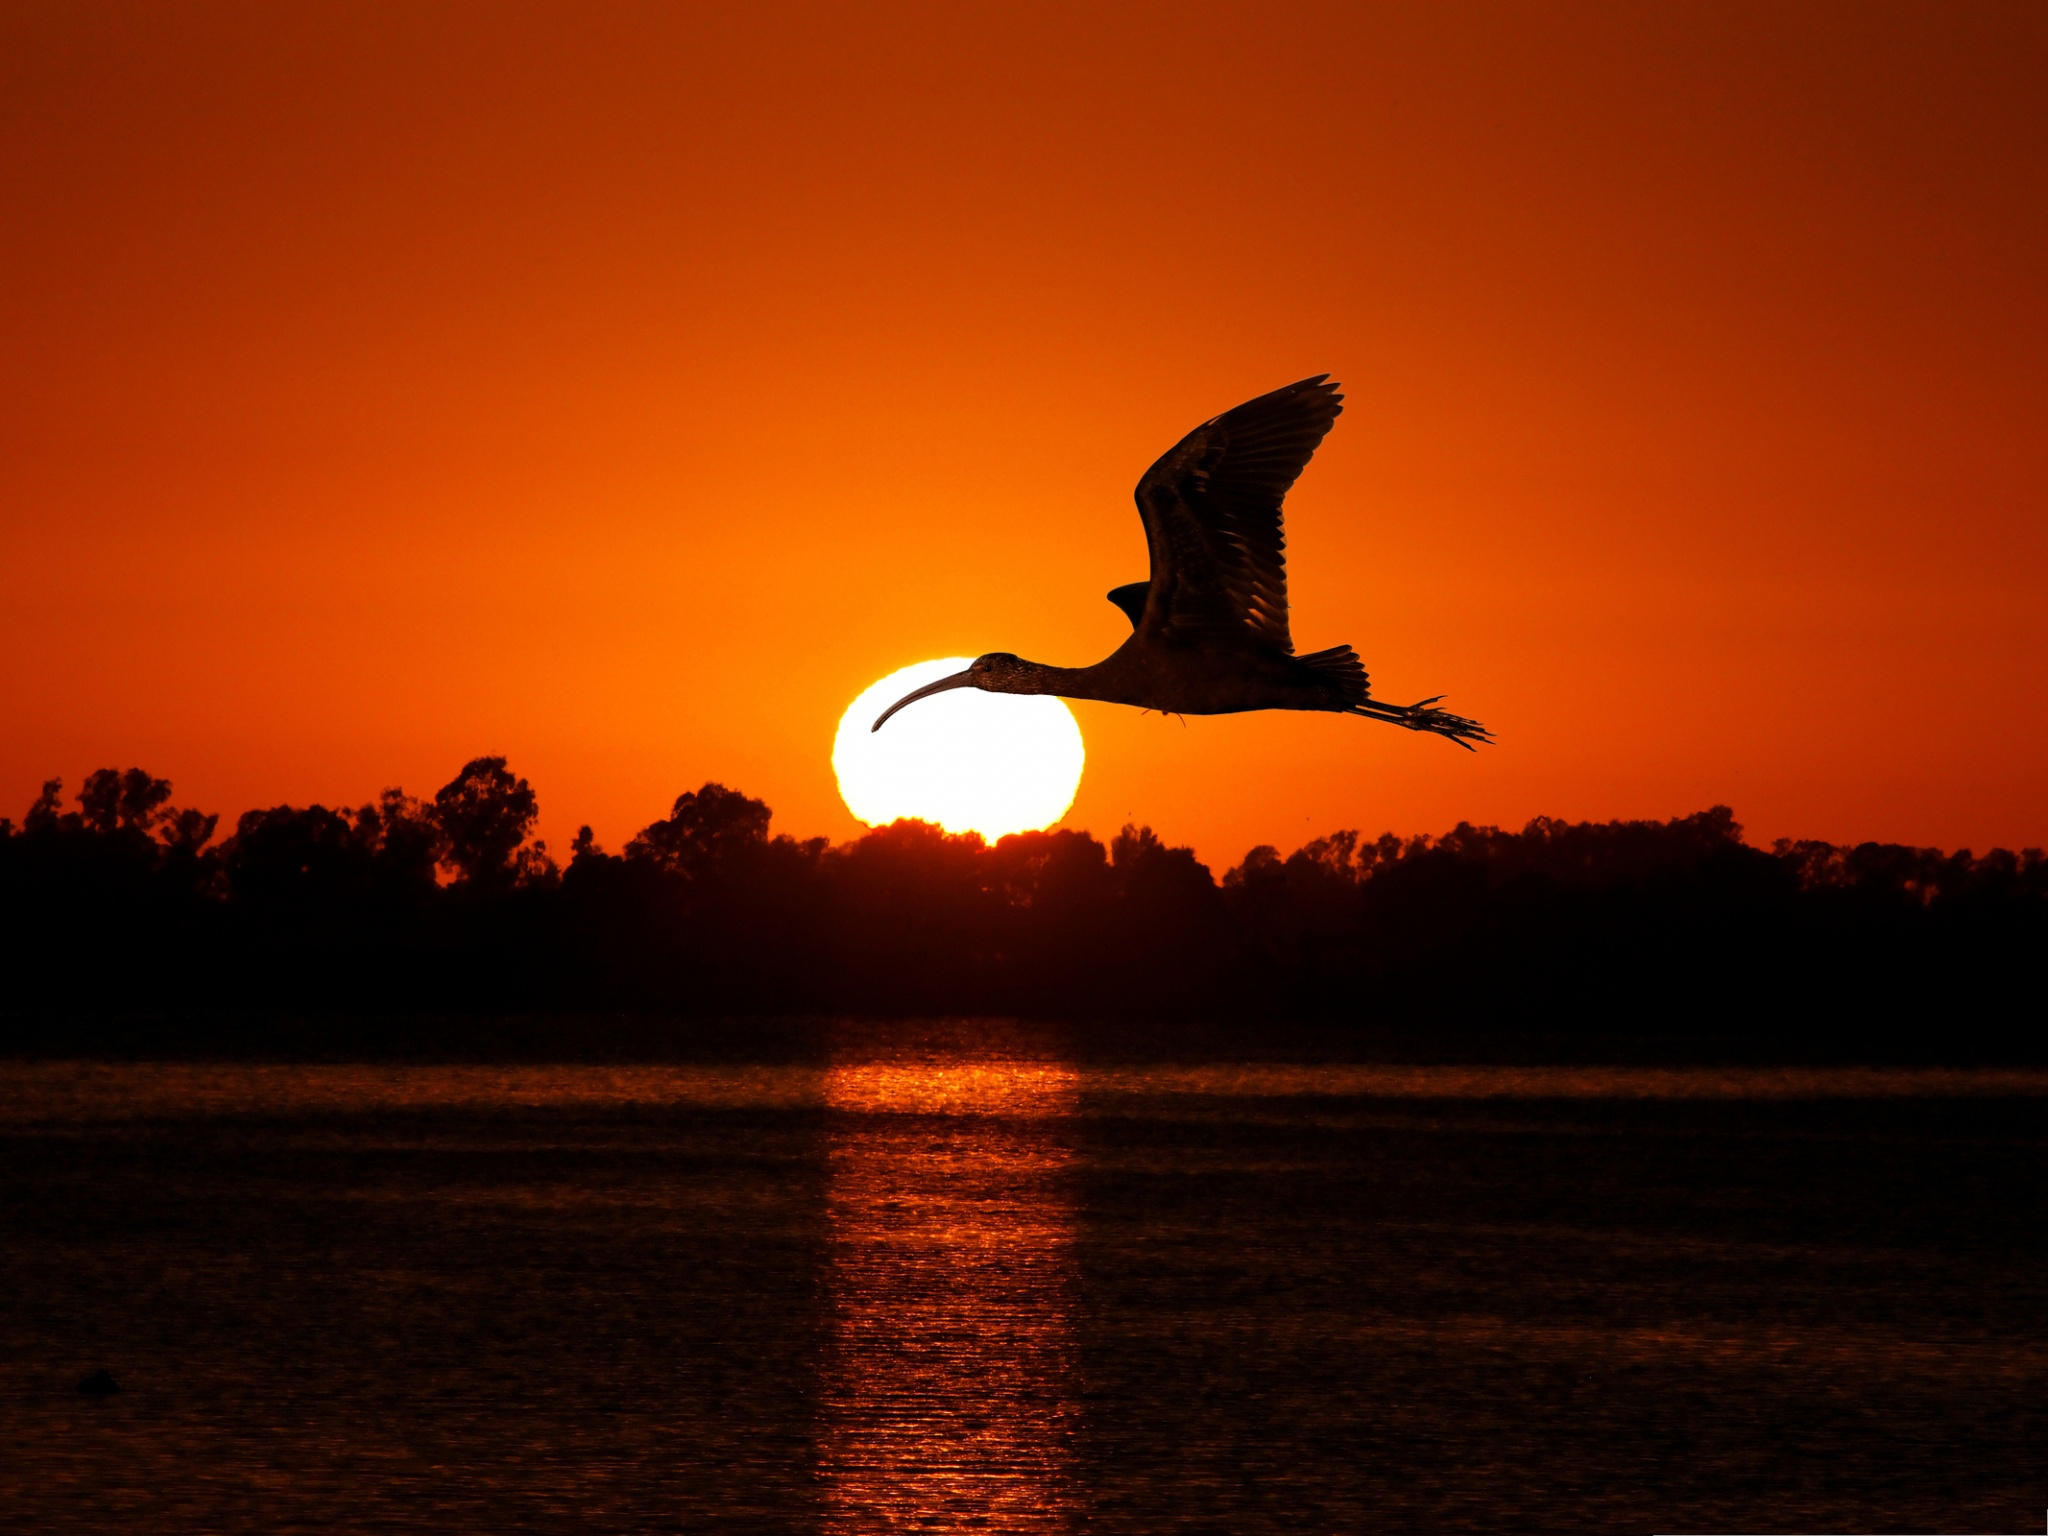 Flying Birds Photography Big Bird Flying At Sunset Amazing Scenery 204...